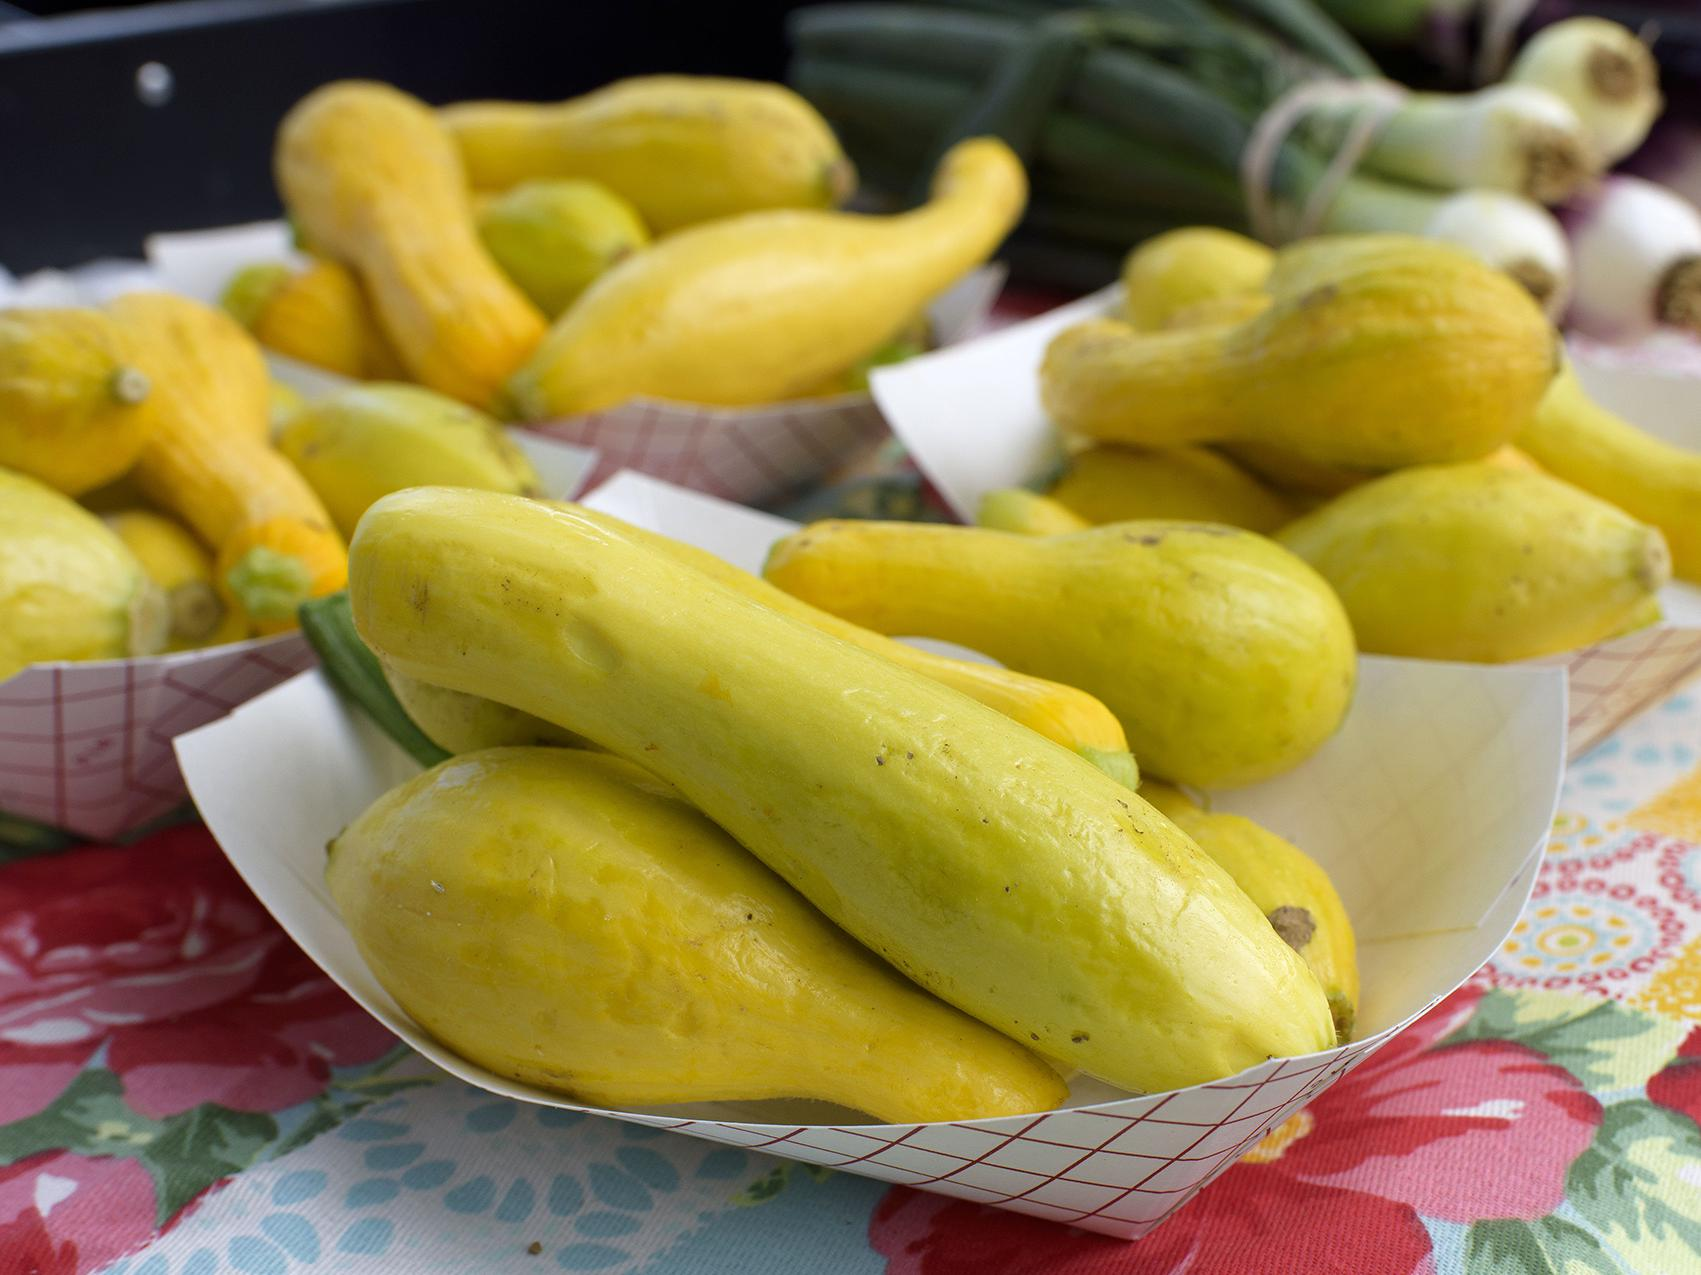 Yellow squash is among the fruits and vegetables available for purchase at the Starkville Farmers Market on May 2, 2017. Early spring temperatures allowed some truck crops producers to plant their fruit and vegetable crops a little early this year. (Photo by MSU Extension Service/Kevin Hudson)